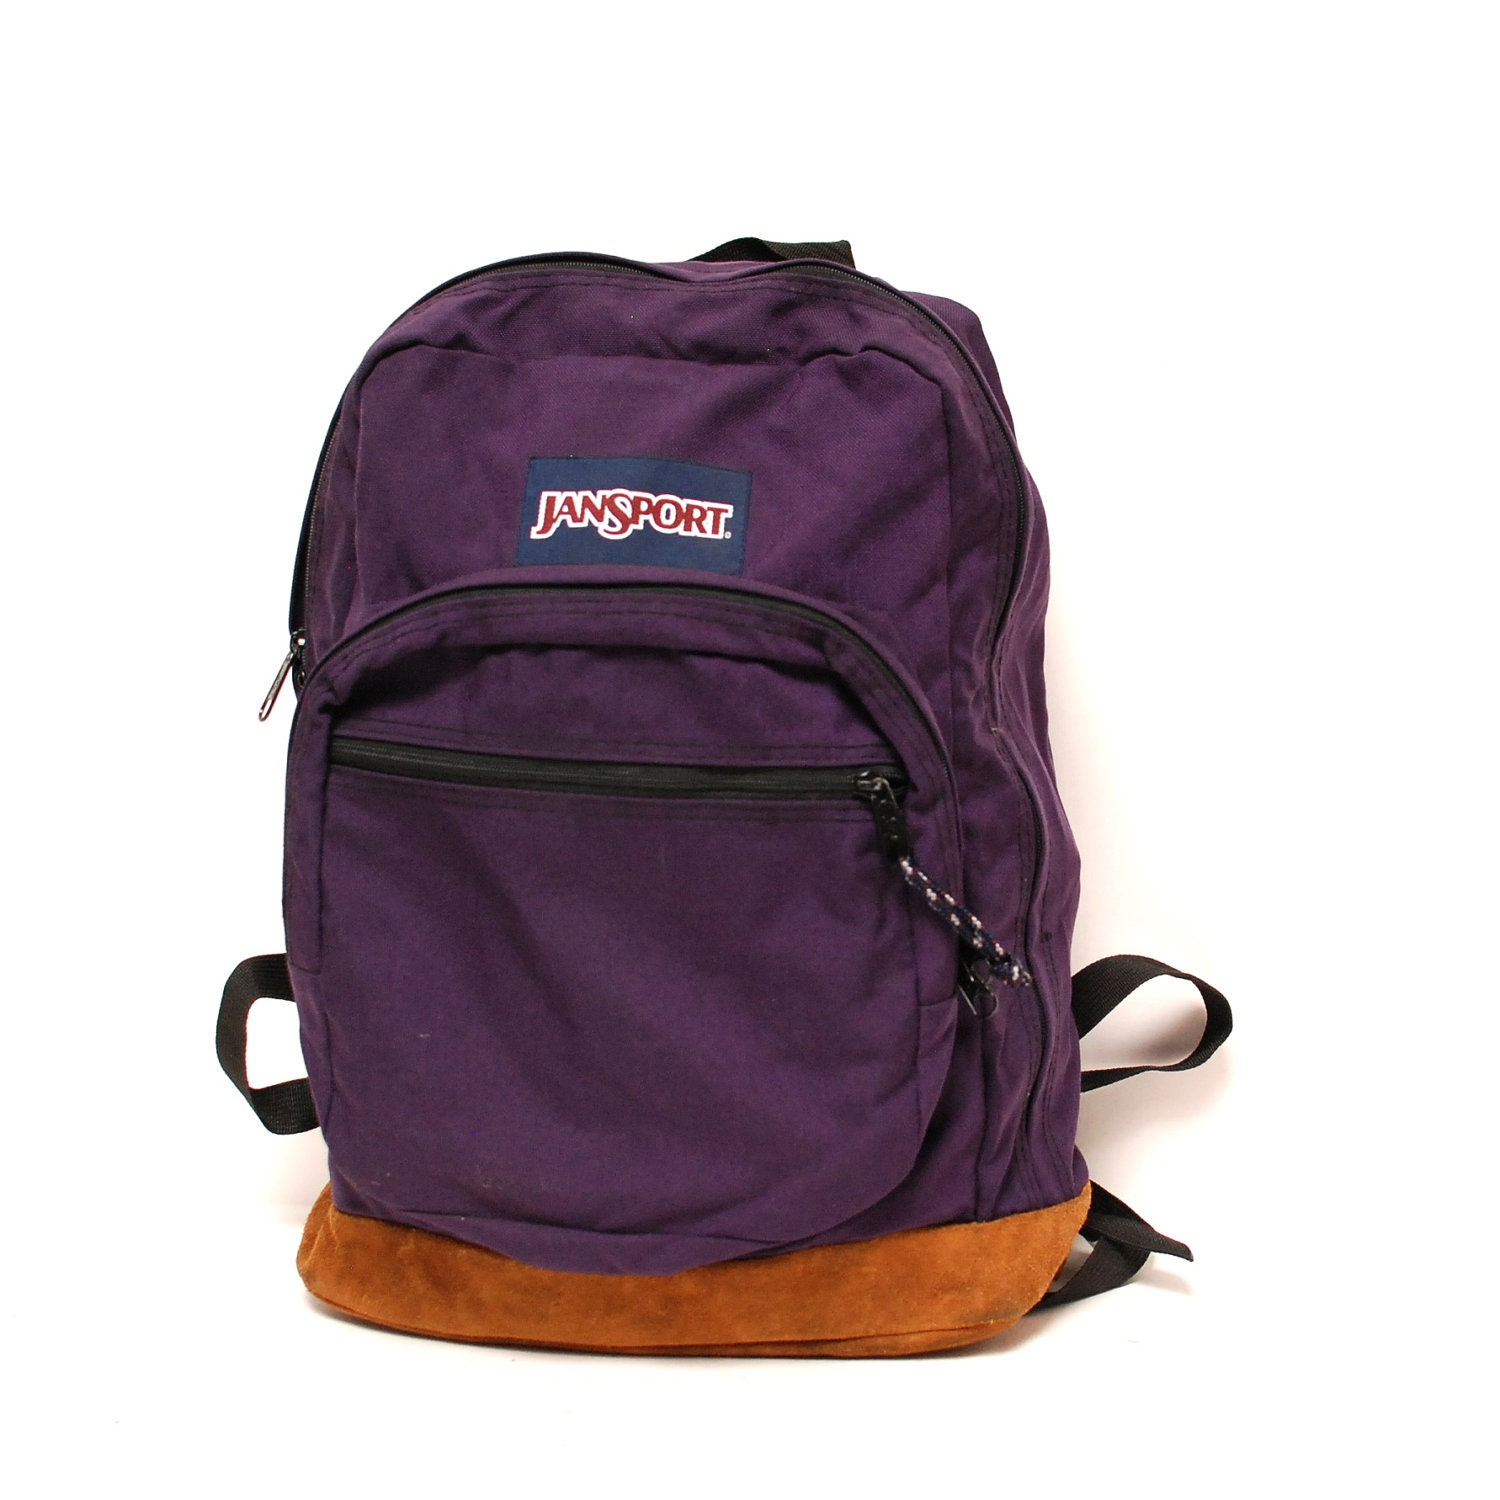 LEATHER JANSPORT purple canvas BACKPACK by CairoVintage on ...